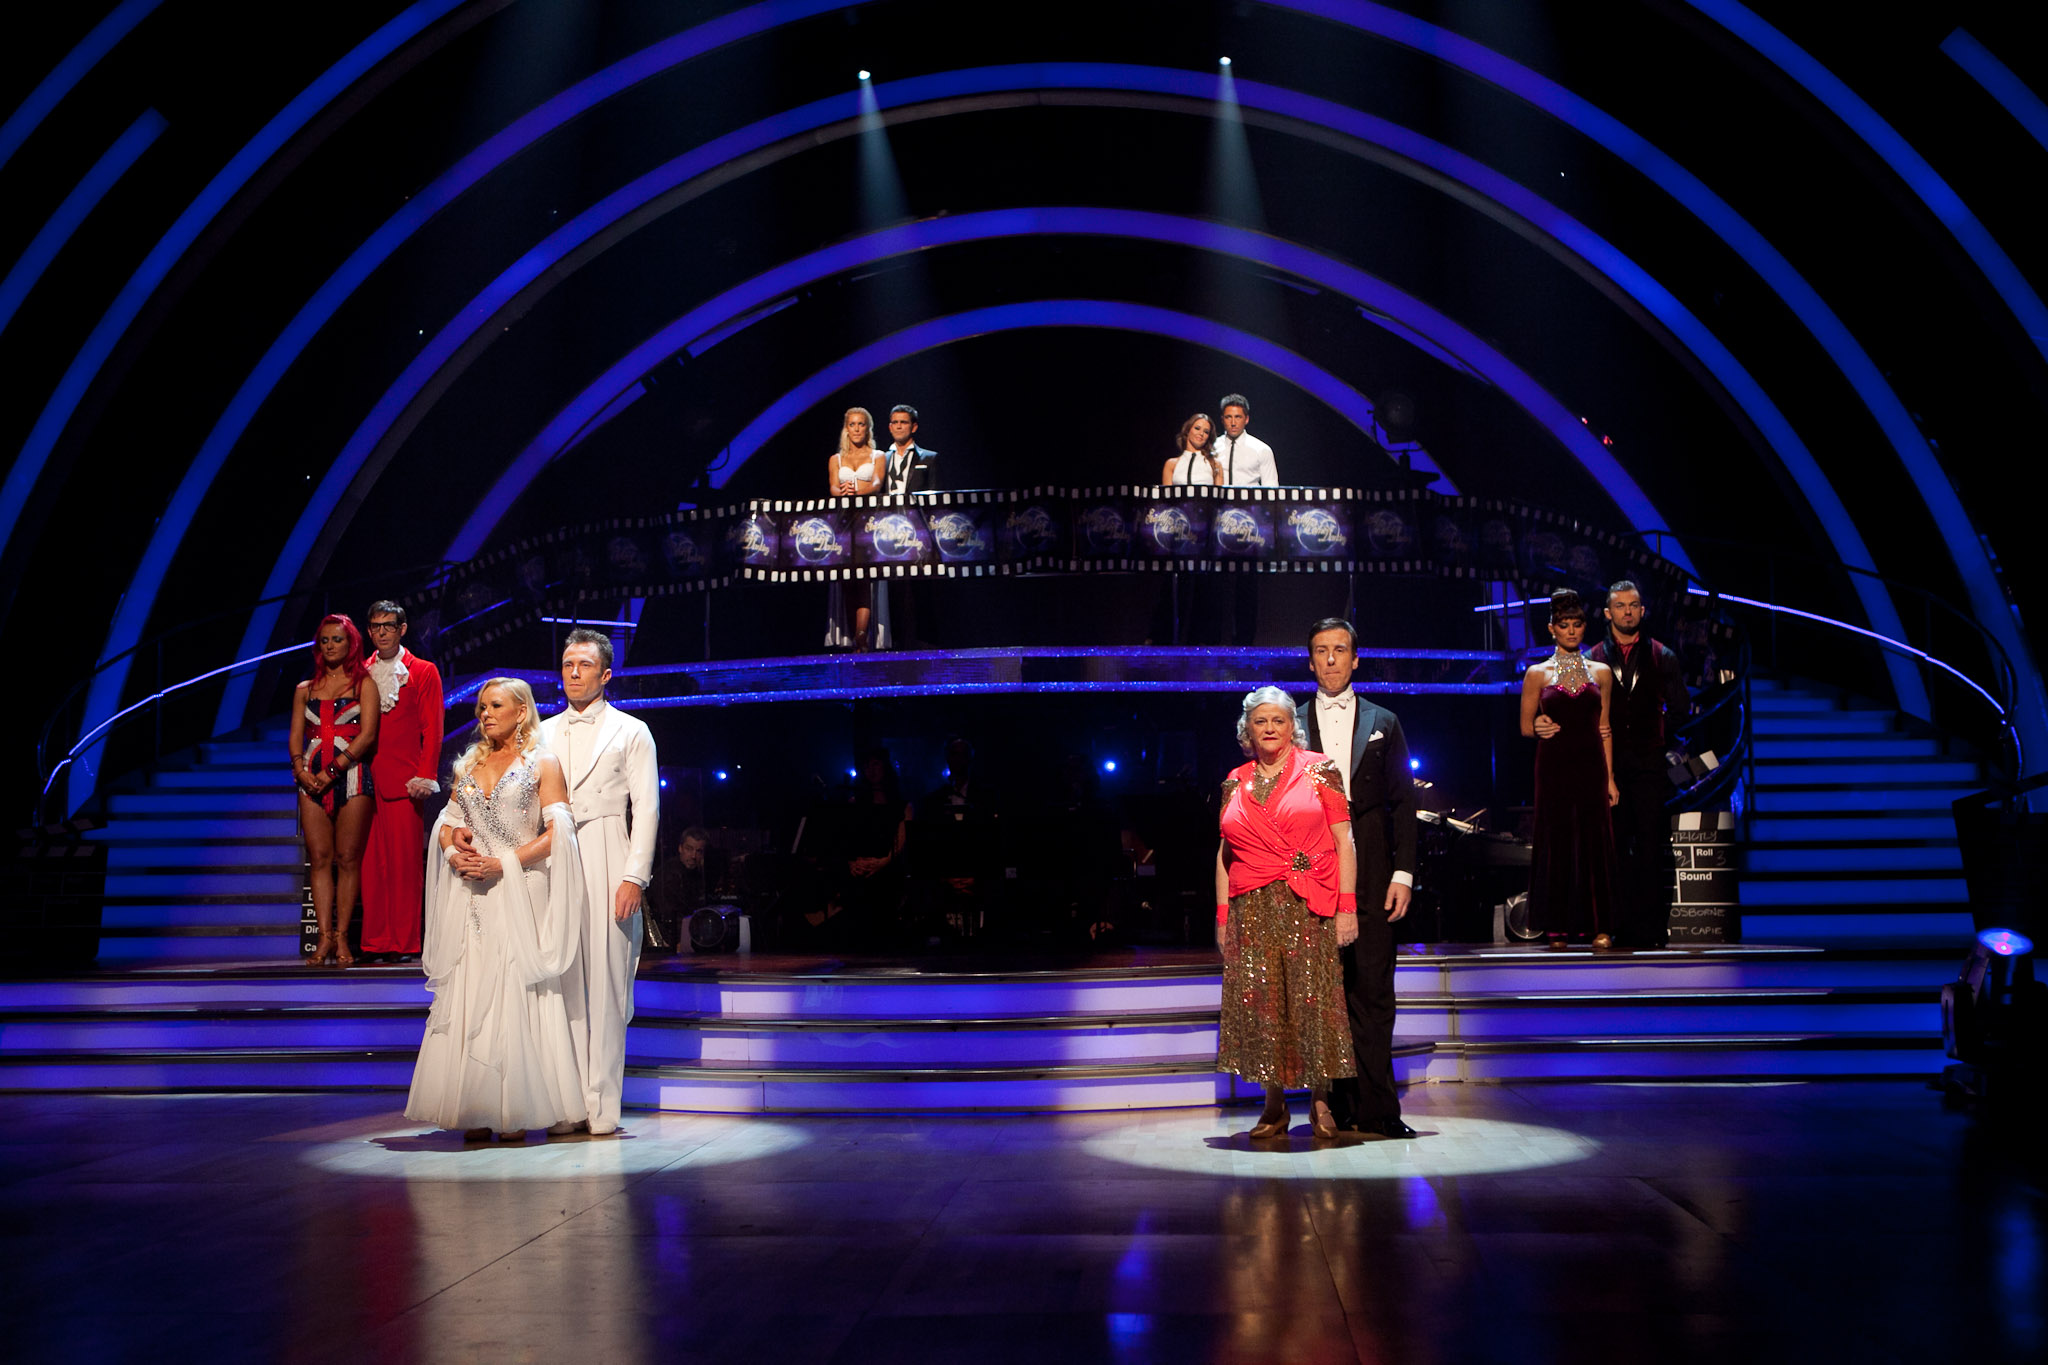 ballet news, ballet, dance, Strictly, BBC, results